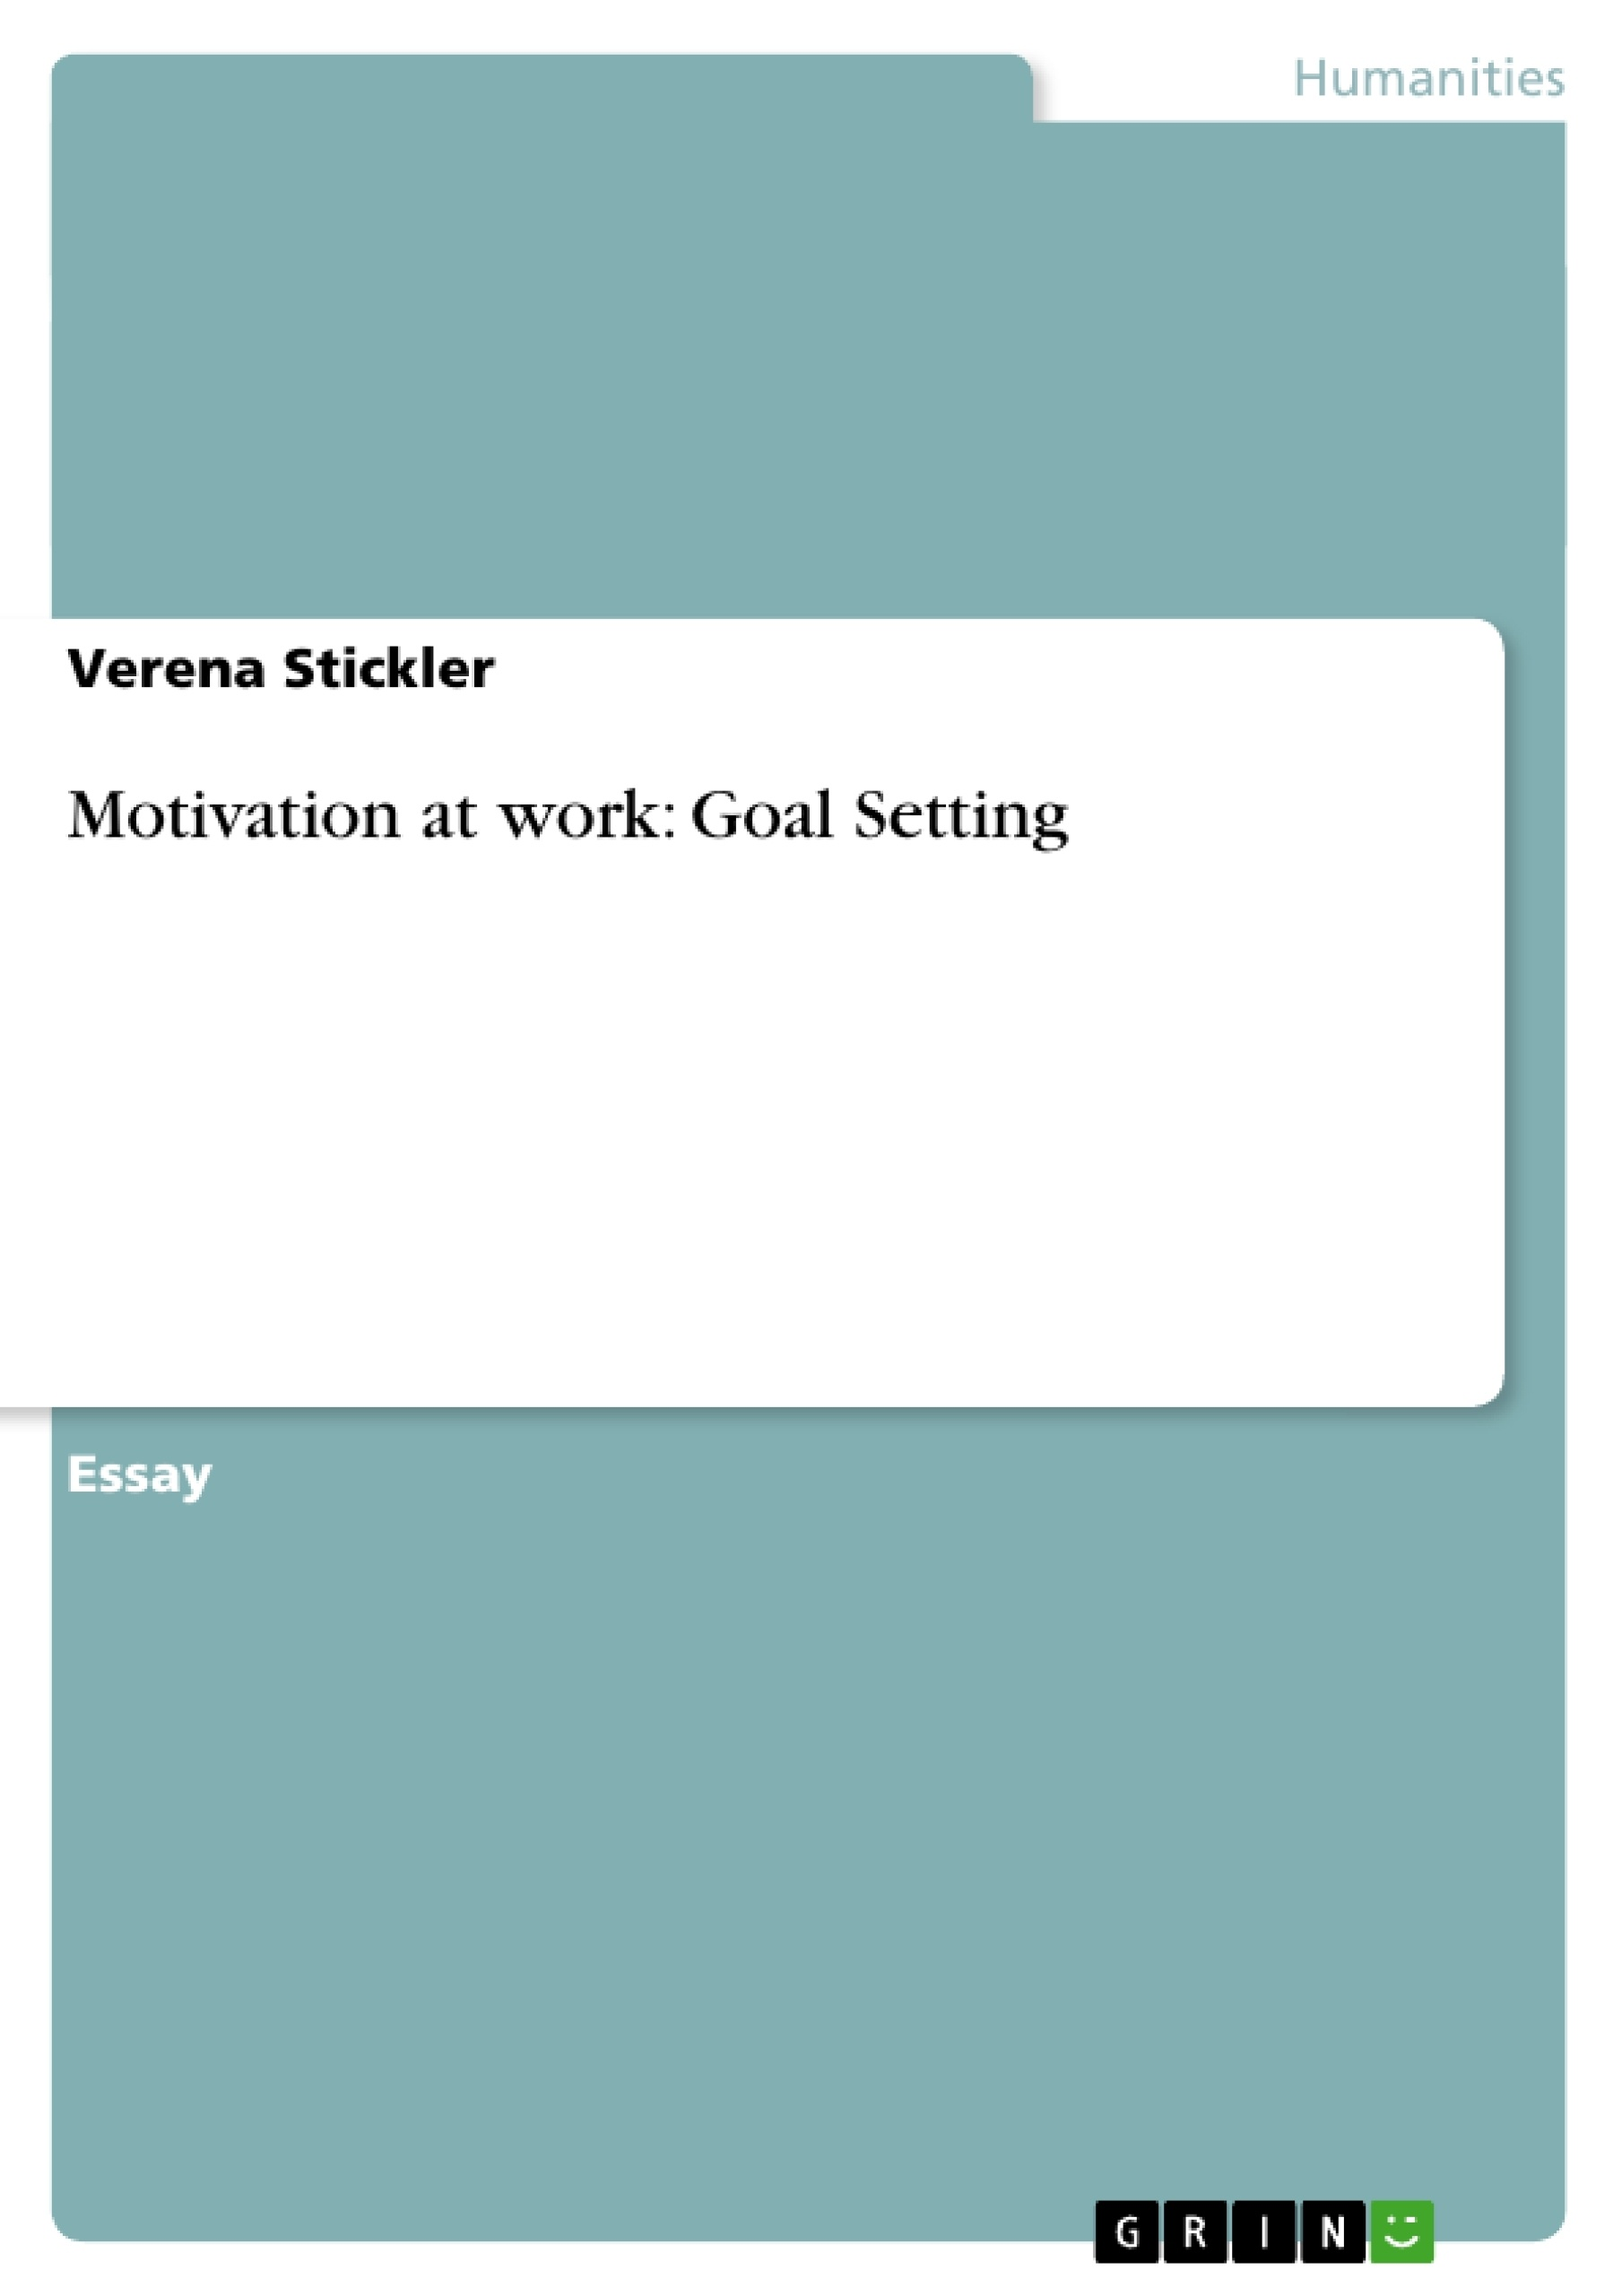 Title: Motivation at work: Goal Setting